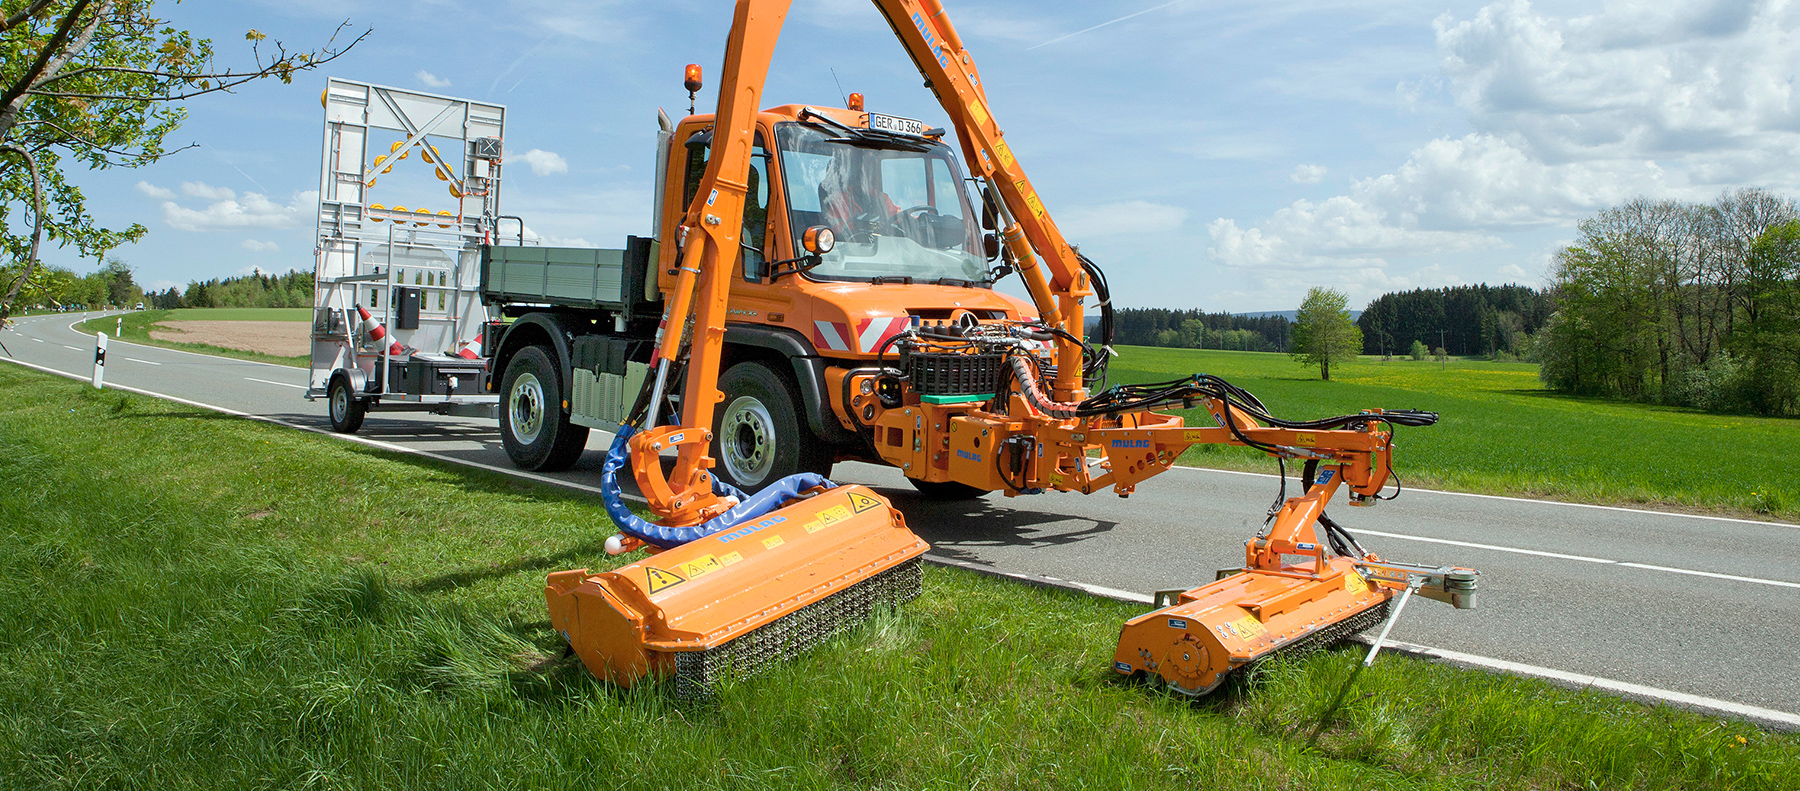 Municipal, Highways and verge maintenance Unimog and Equipment from South cave Tractors Ltd, The Home of Mercedes-Benz Unimog in the UK